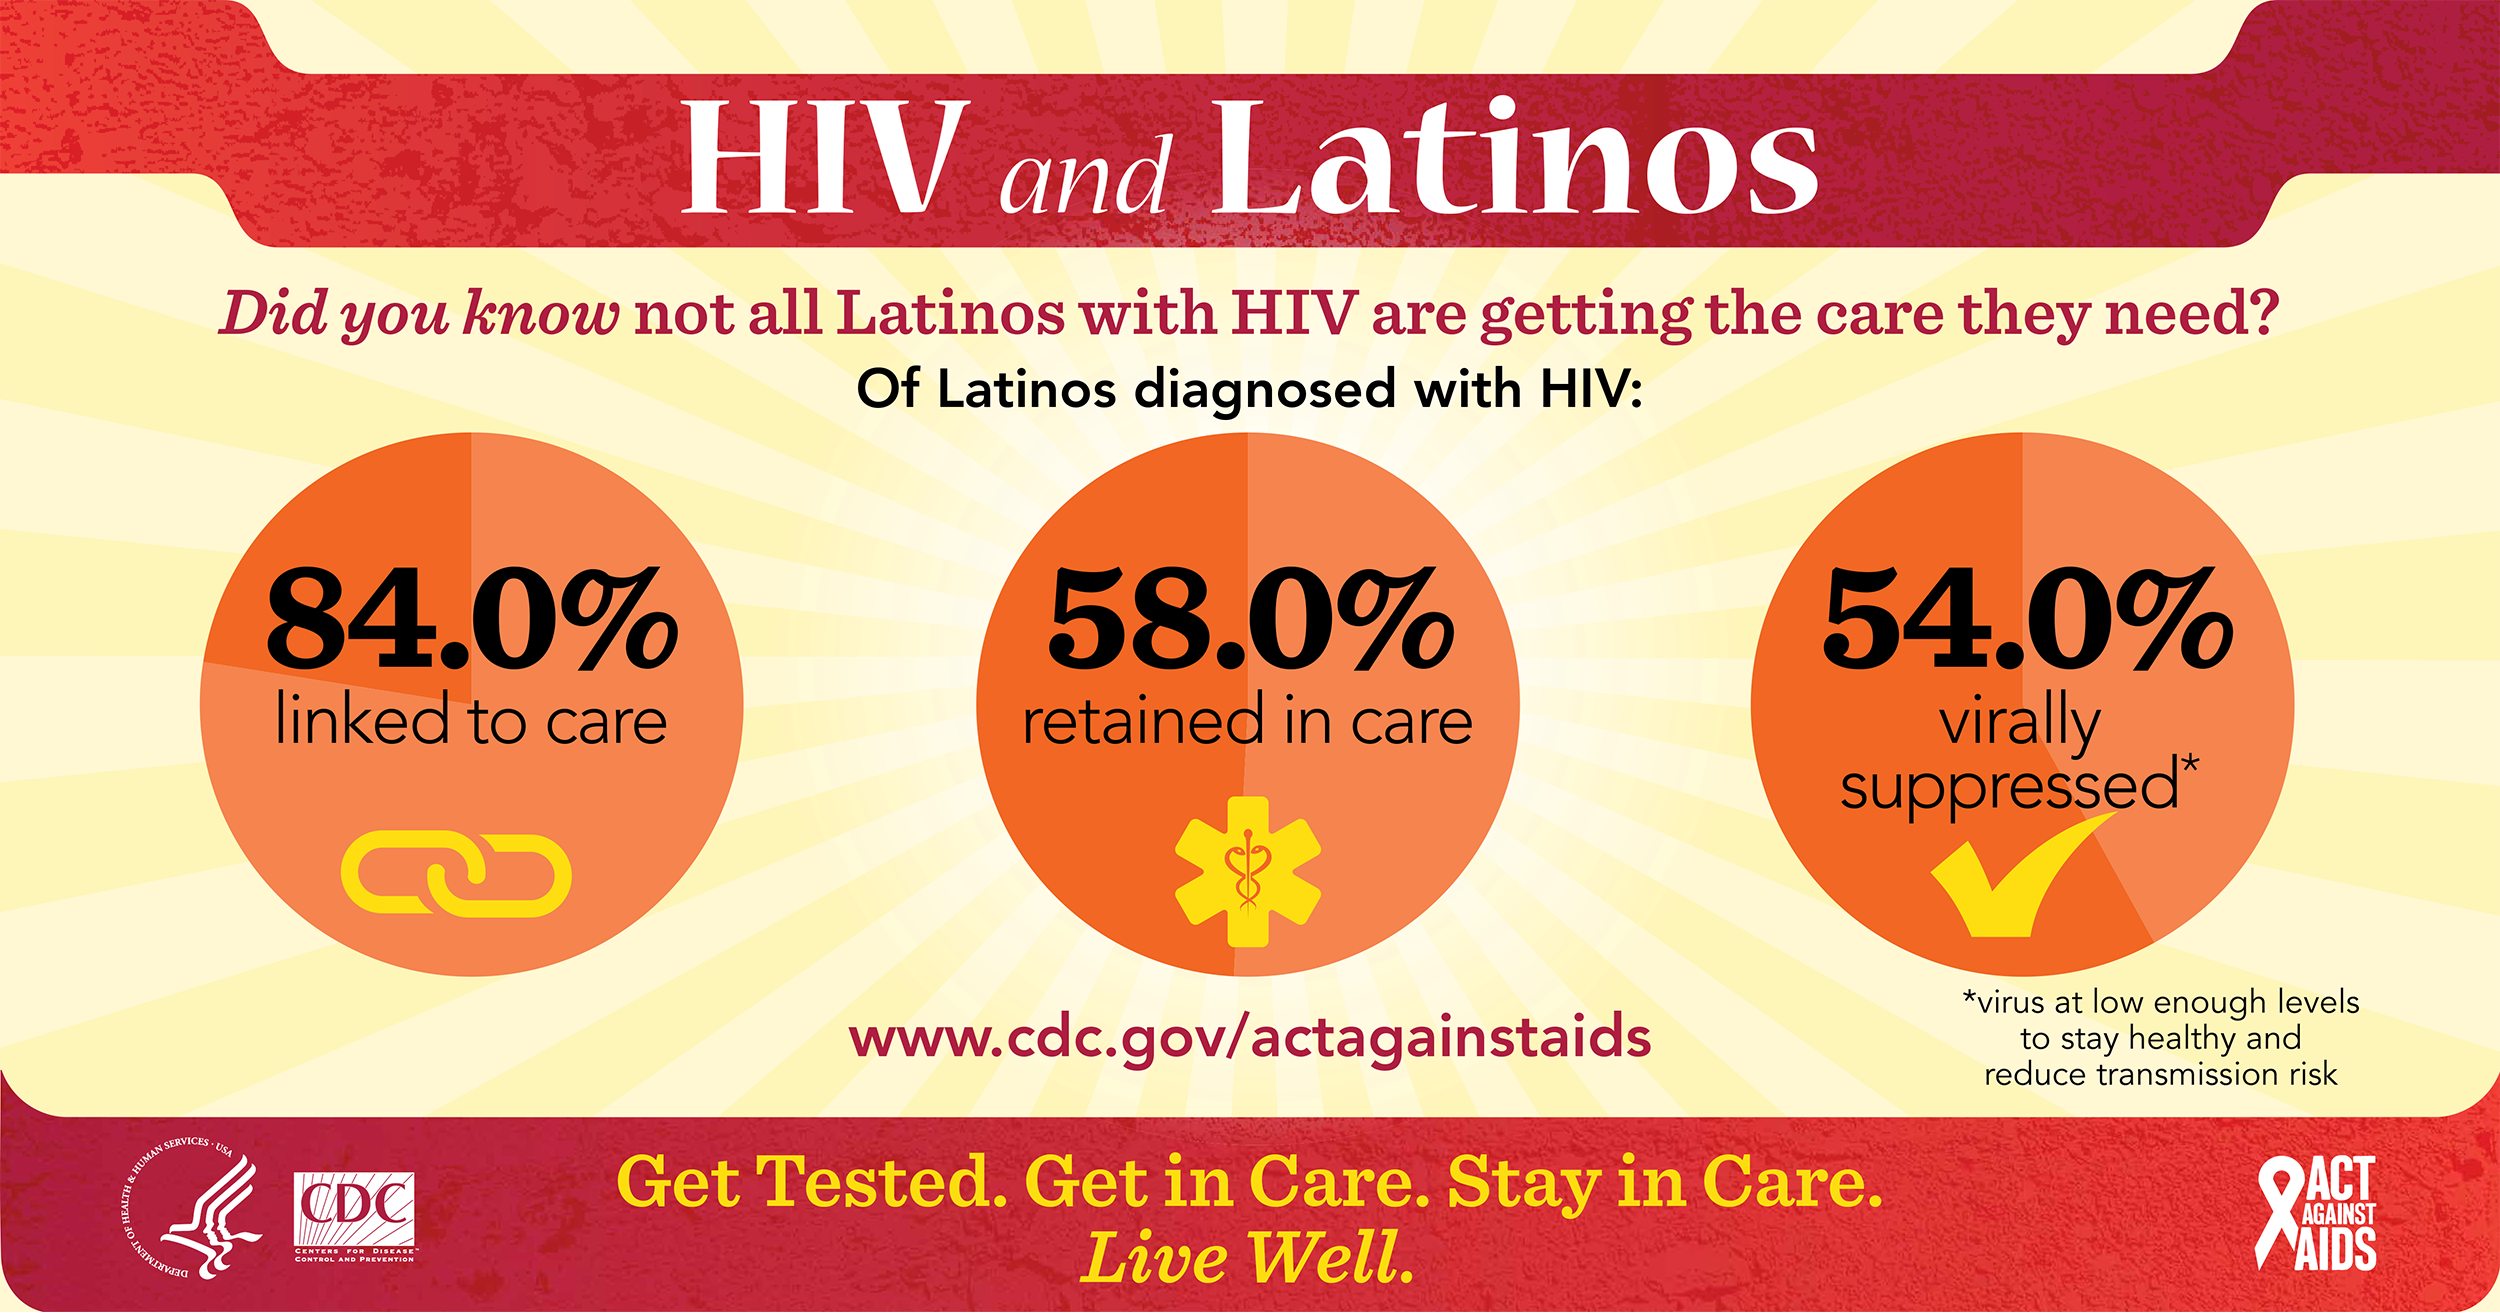 This infographic provides continuum of care data on HIV among Latinos. Among Latinos diagnosed with HIV, 84% were linked to care, 58% were retained in care, and 54% were virally suppressed.